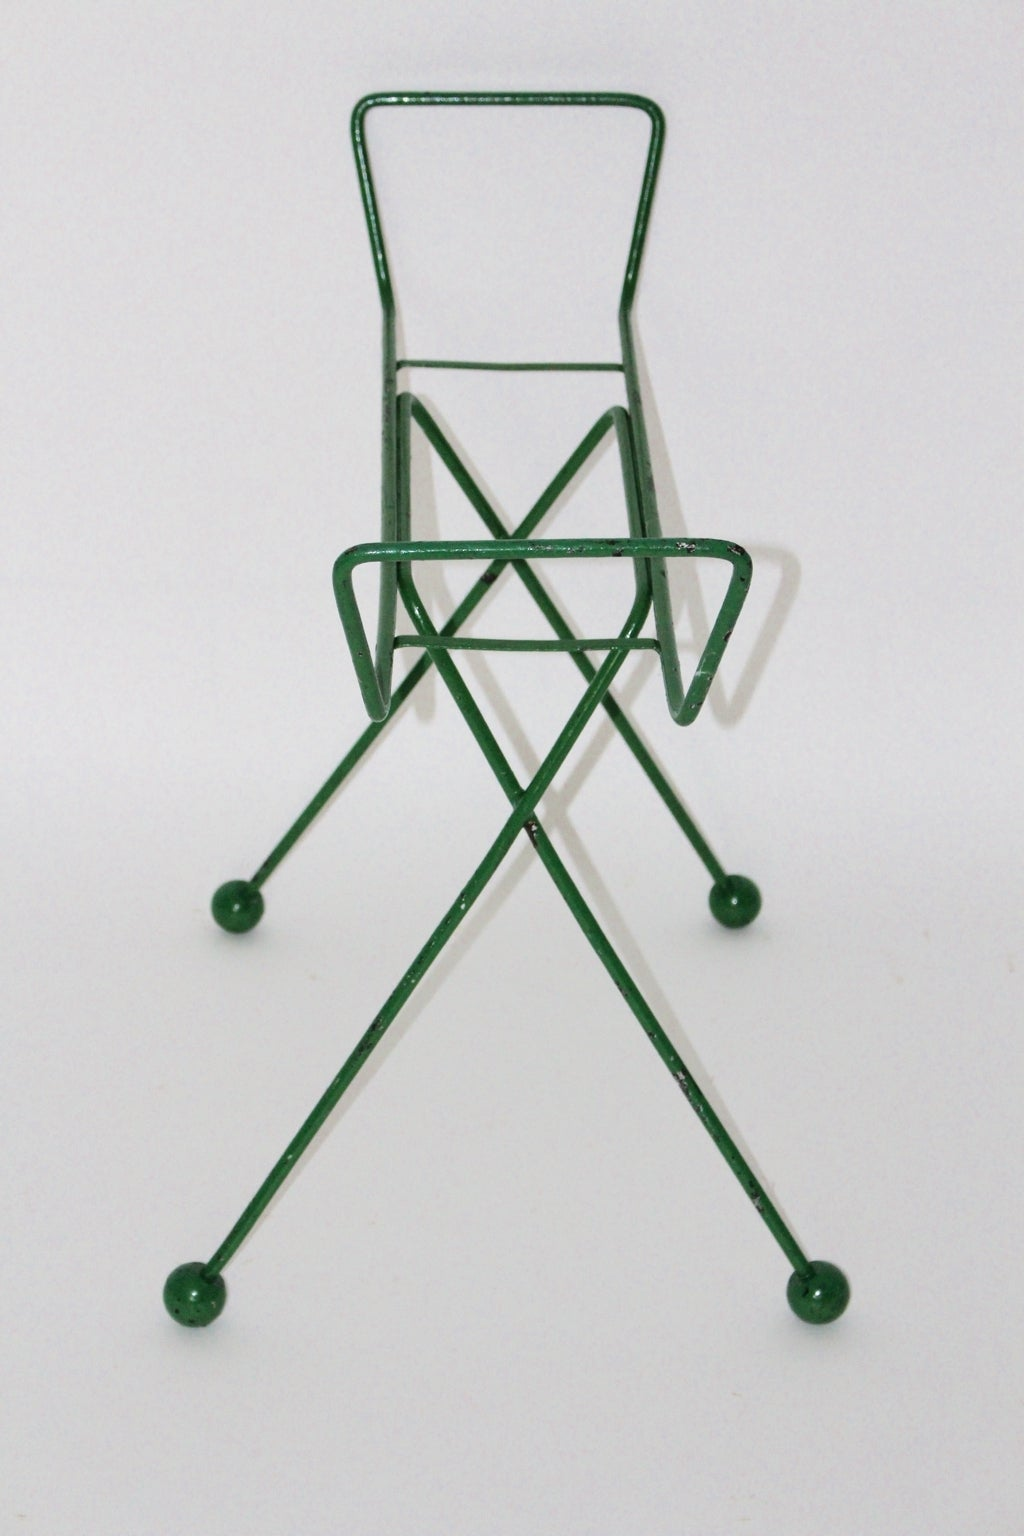 Mid Century Modern Green Metal Vintage Luggage Rack Attr to Jean Royère 1950s In Good Condition For Sale In Vienna, AT